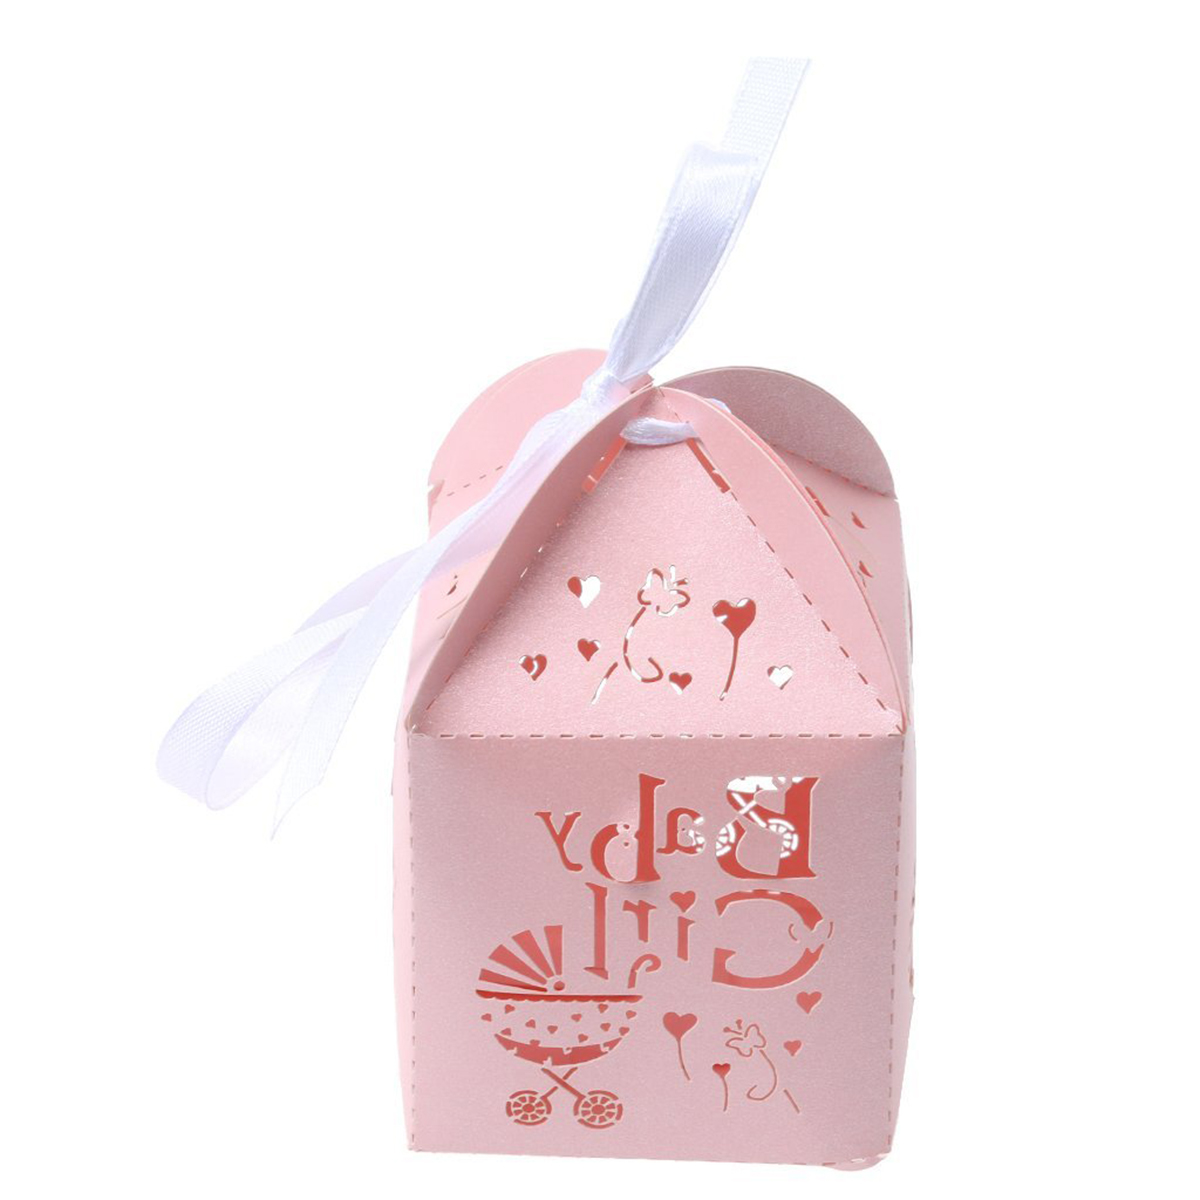 50pcs Paper Candy Sweets Gift Bonboniere Cardboard Boxes Wedding ...